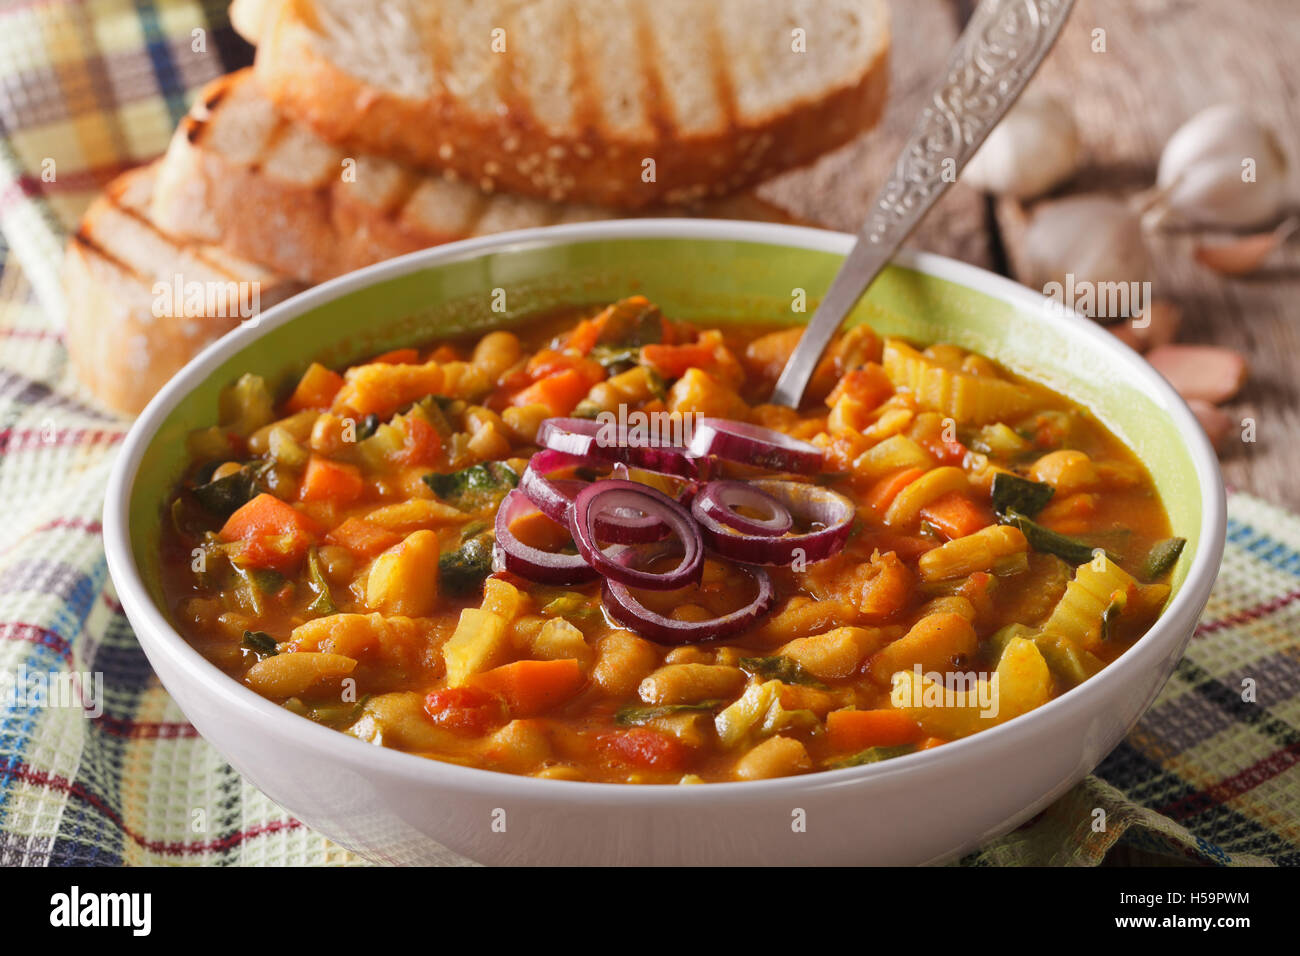 Thick Tuscan soup ribollita close up in a bowl on the table. Horizontal - Stock Image